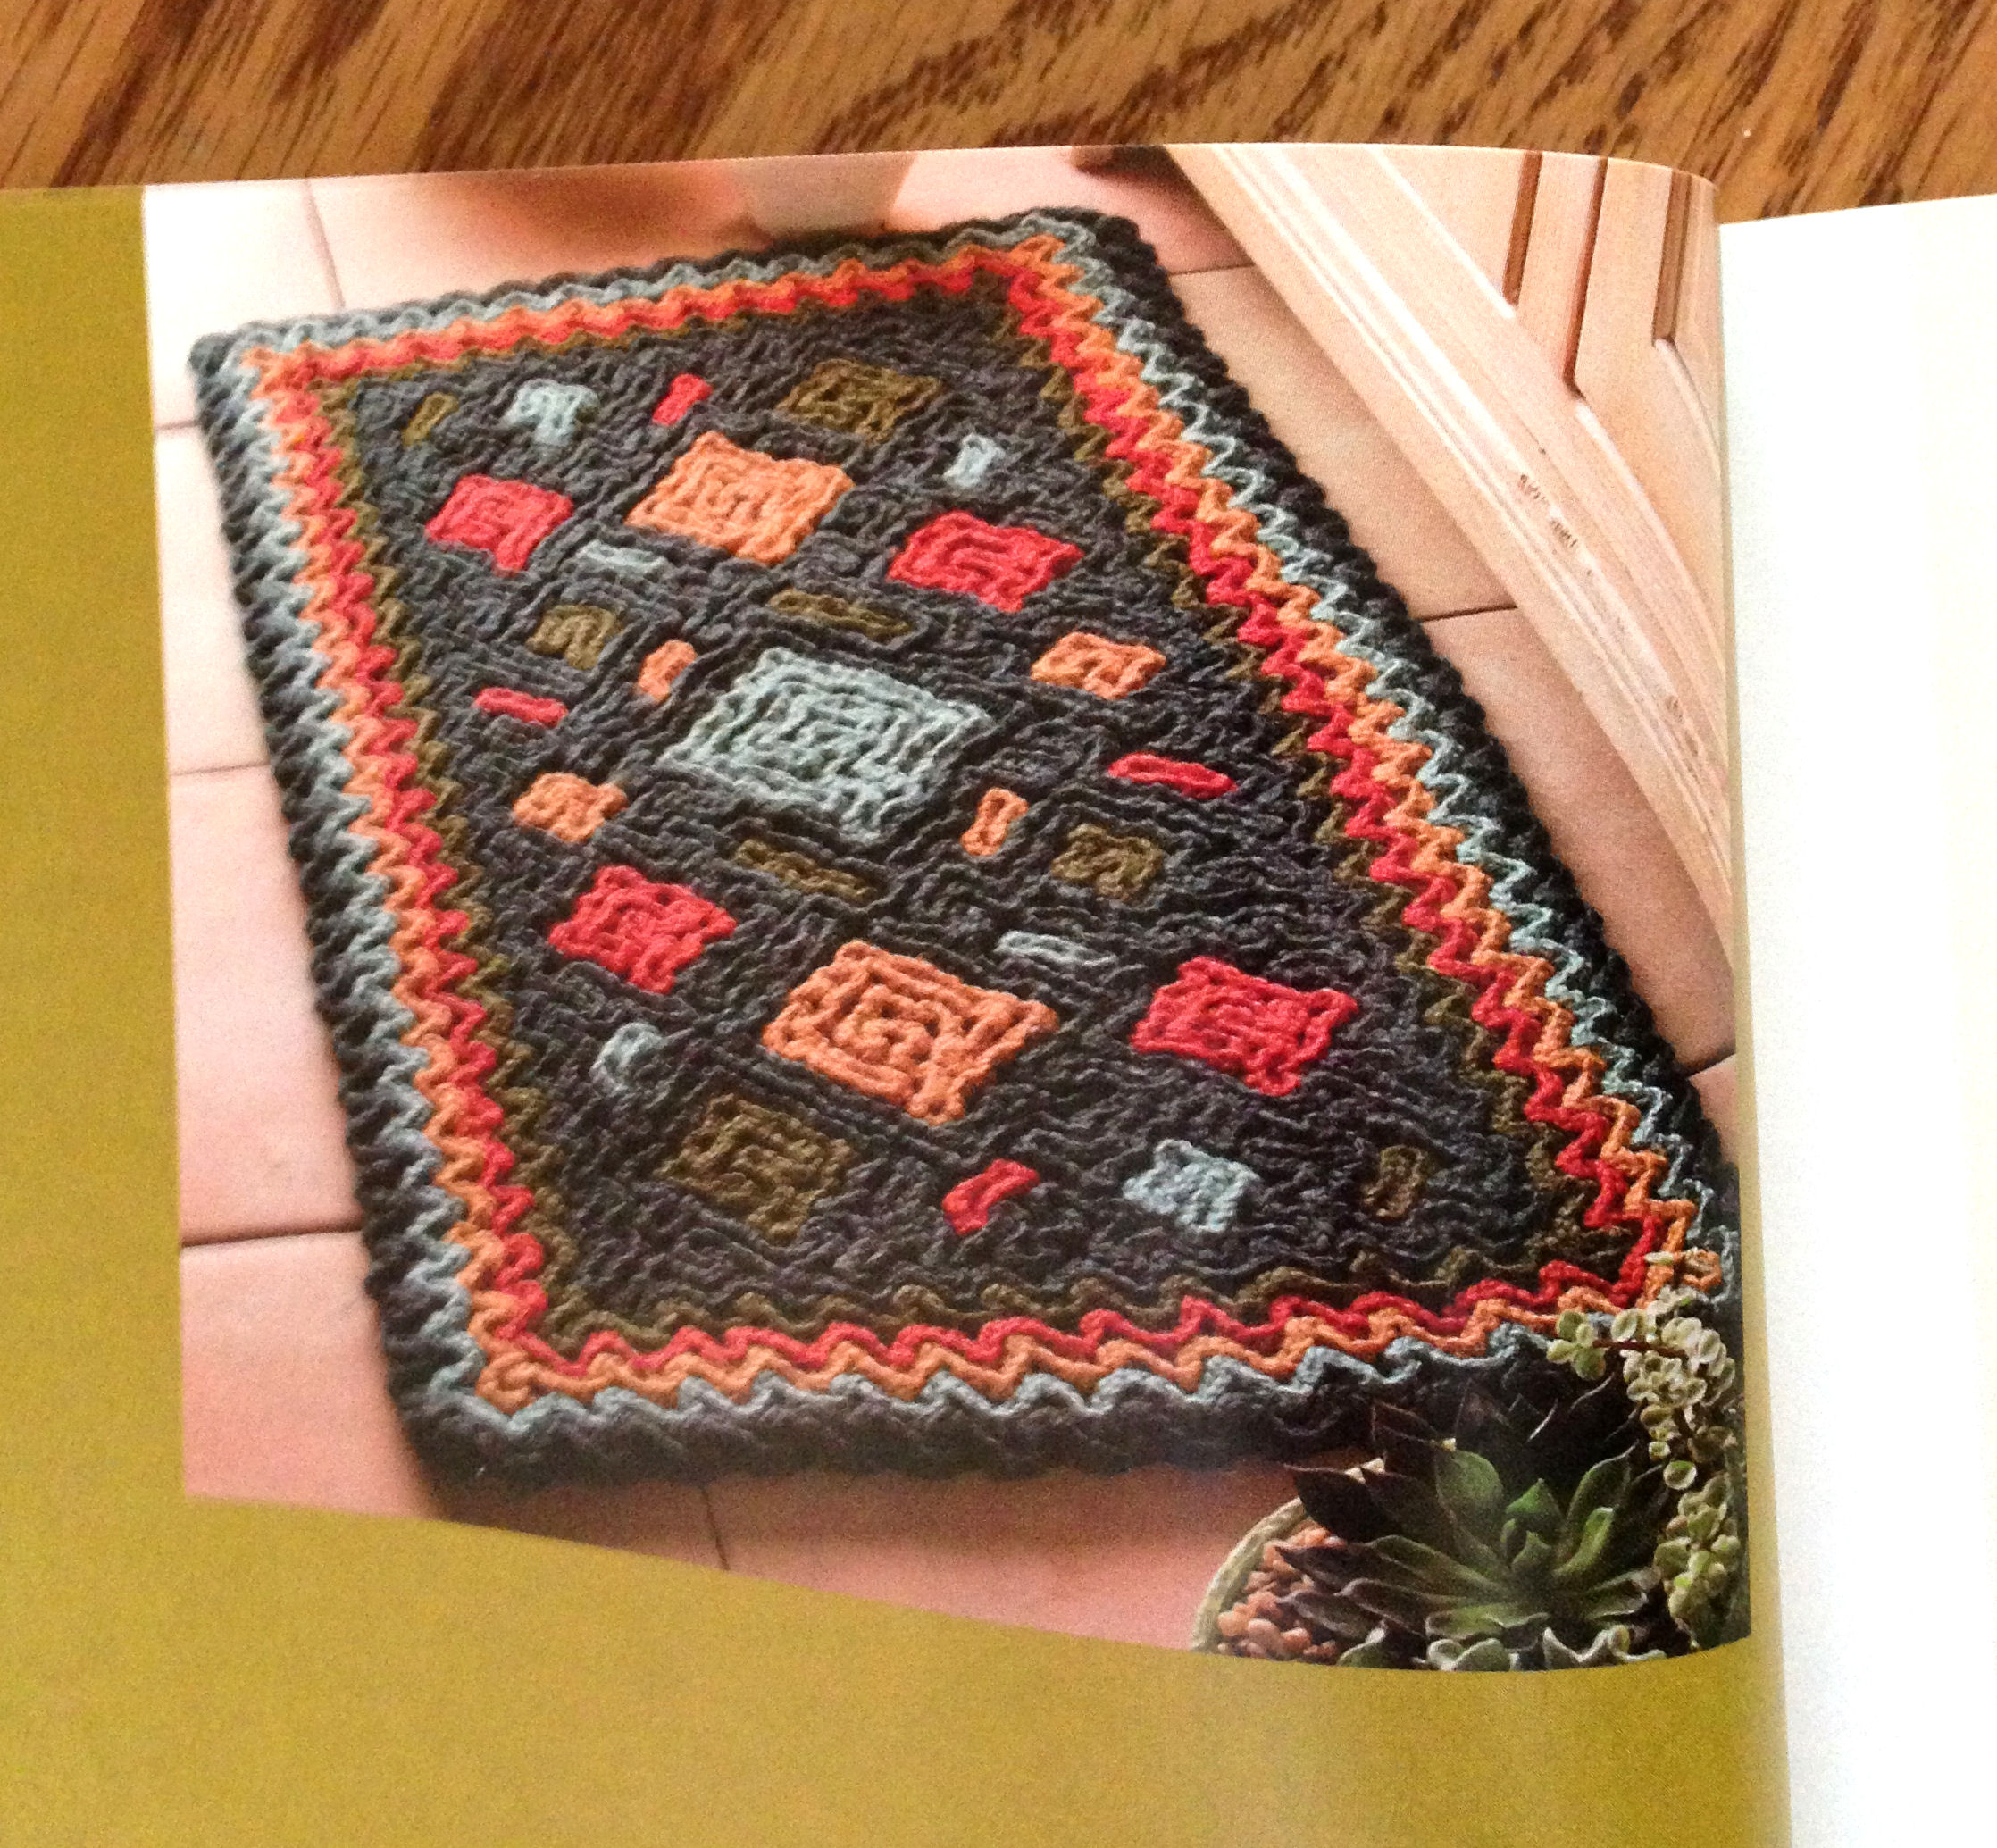 Crocheting Rugs Book : diagonal crochet wiggly crochet irish crochet knit look crochet ...